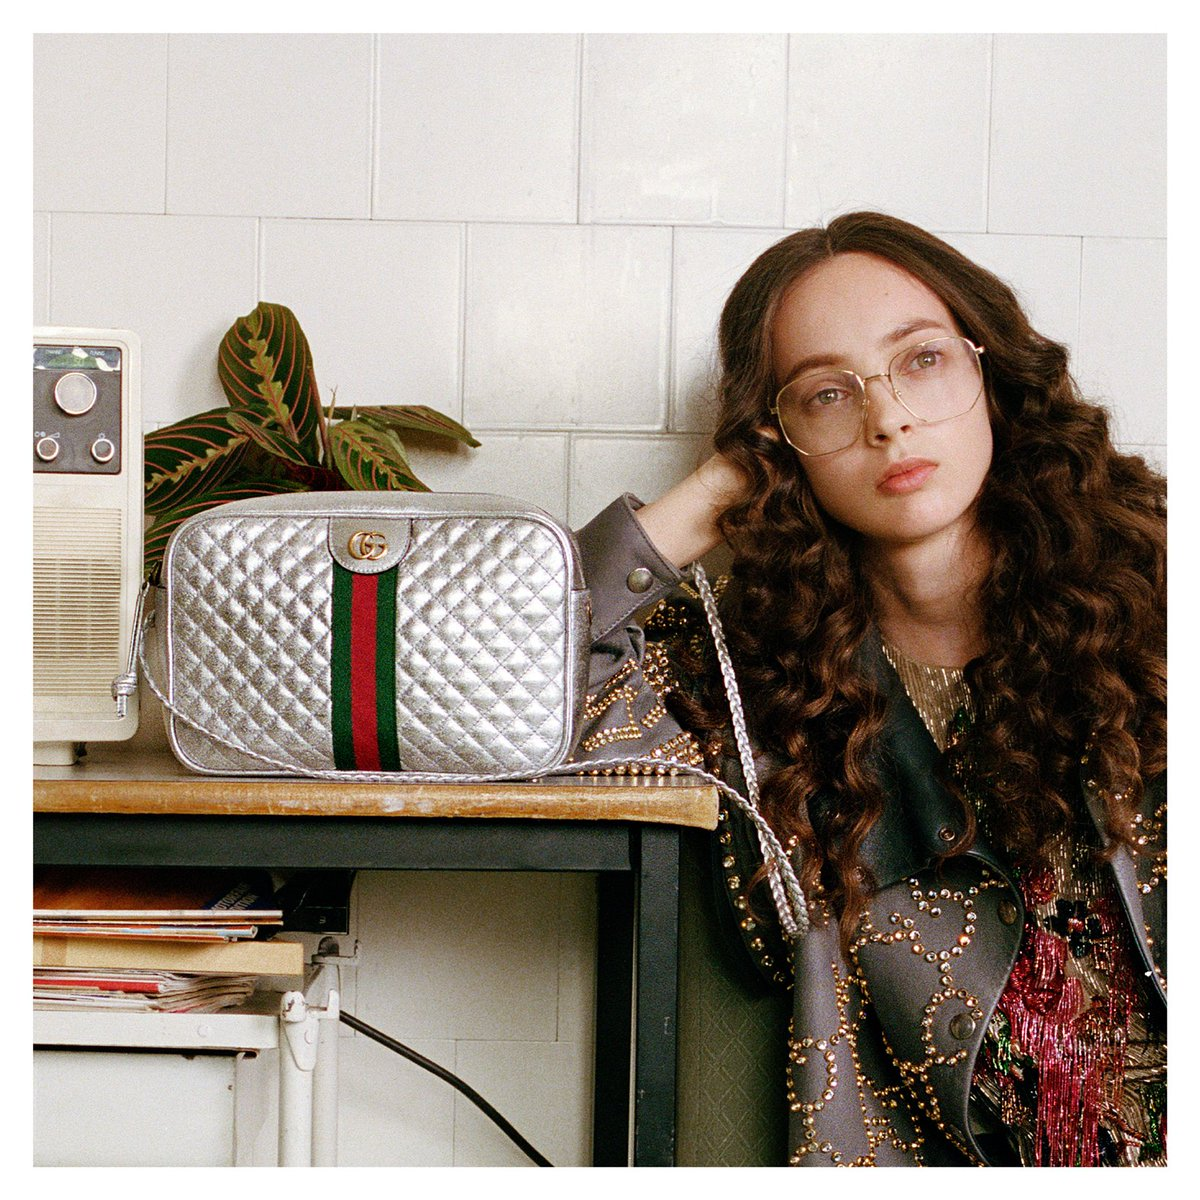 From #GucciFW18 by #AlessandroMichele, a matelassé shoulder bag in laminated silver leather featuring the Double G and the House Web stripe.